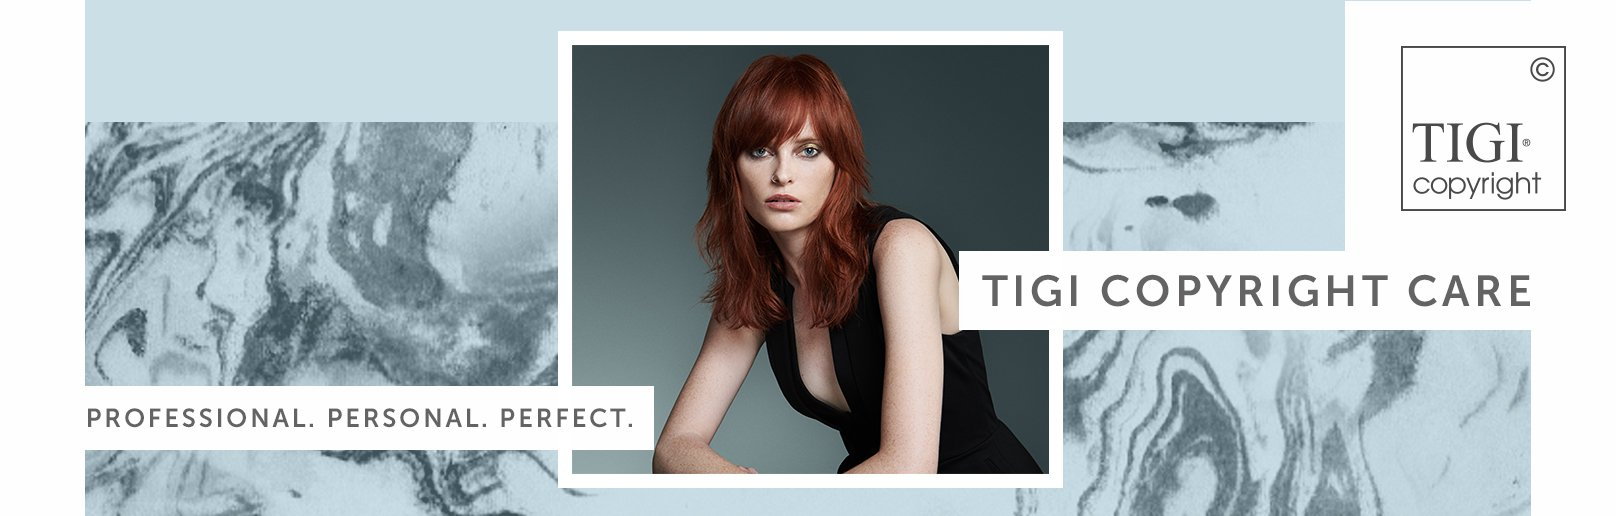 TIGI Copyright Care available now at Forresters Hair Salons Jemma